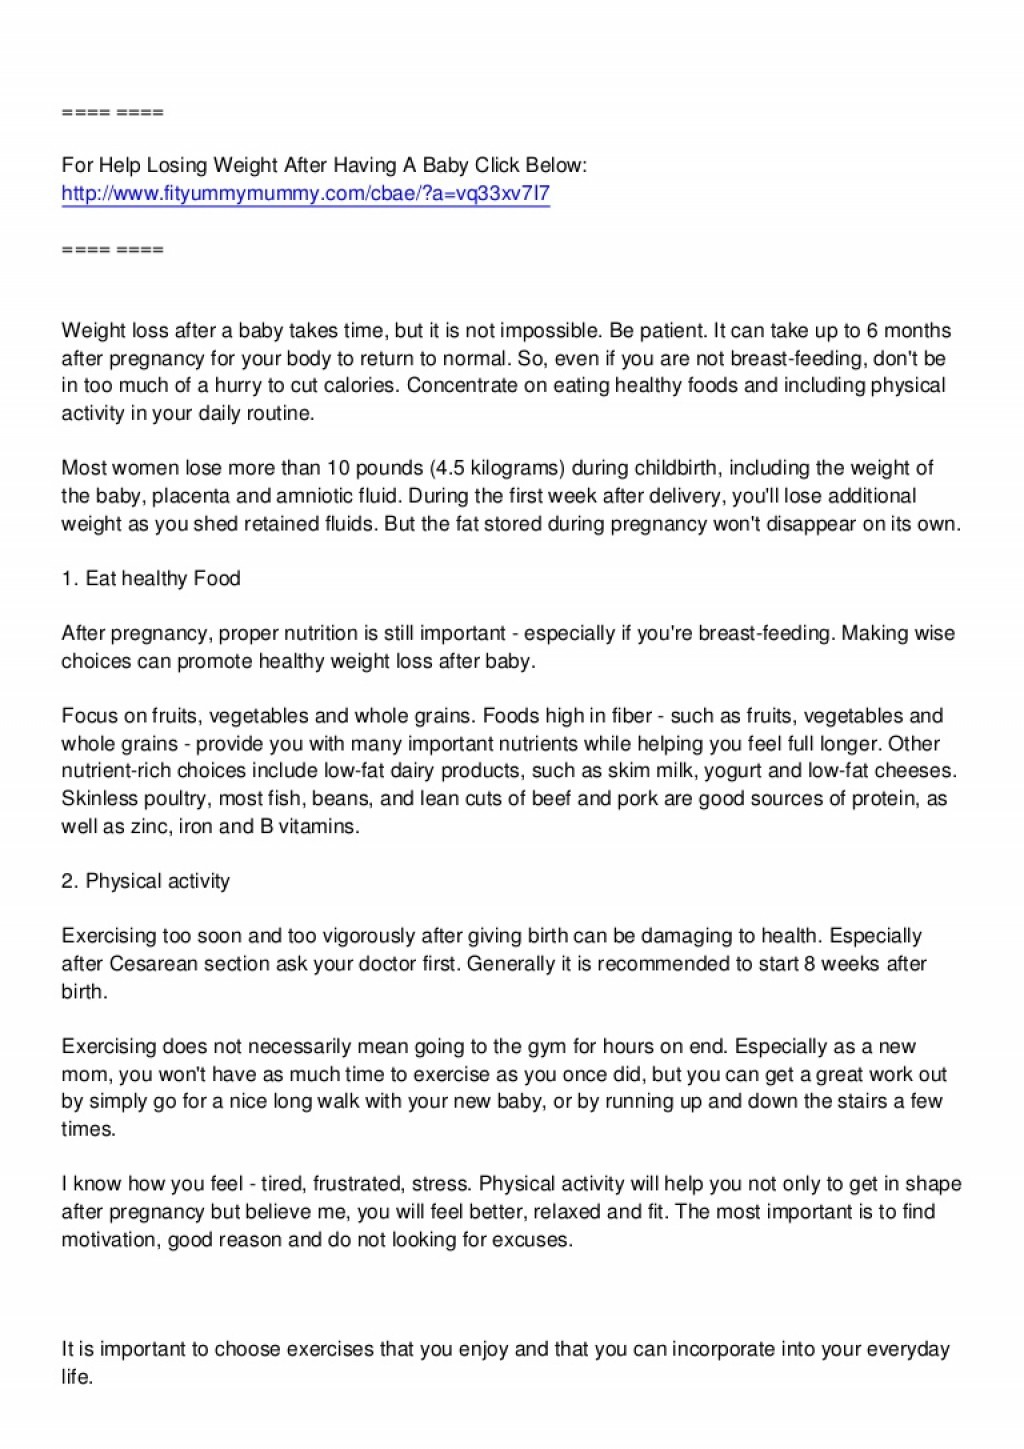 005 Essay Example Weightlossafterbaby Howtogetridofyourcesareanbelly Phpapp01 Thumbnail Weight Impressive Loss Tomlinson Conclusion Surgery Large